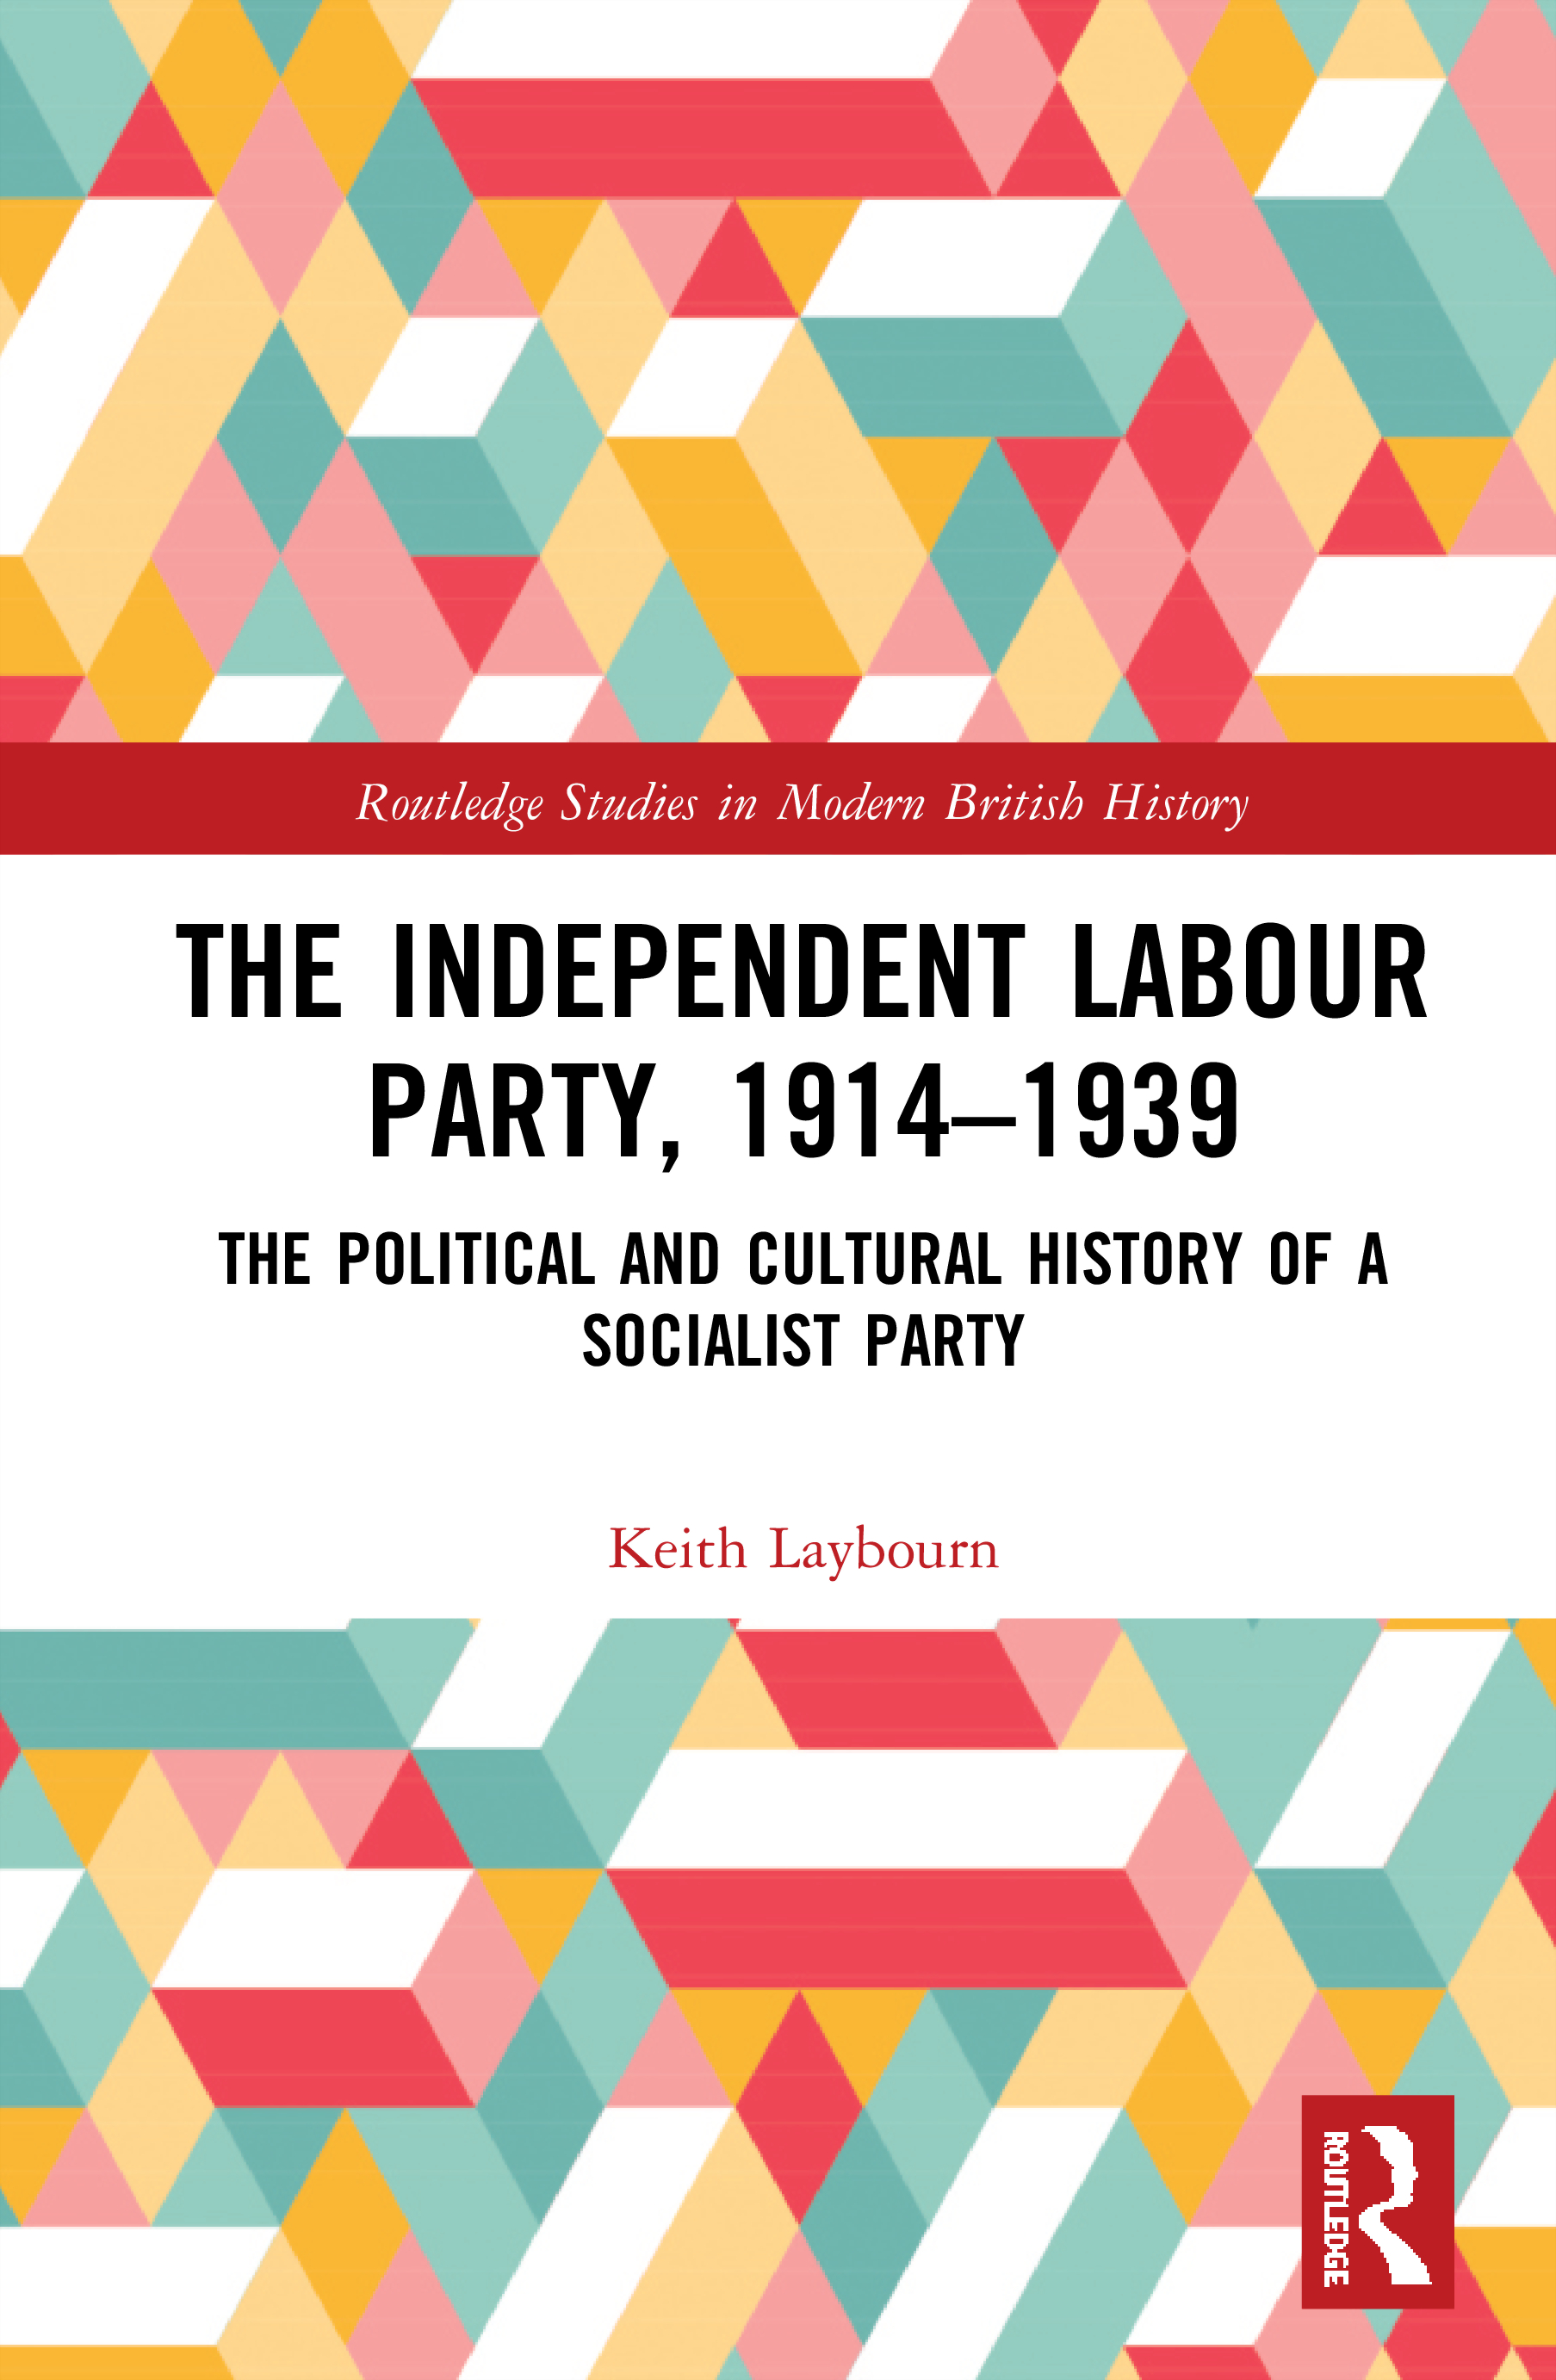 The Independent Labour Party, 1914-1939: The Political and Cultural History of a Socialist Party book cover